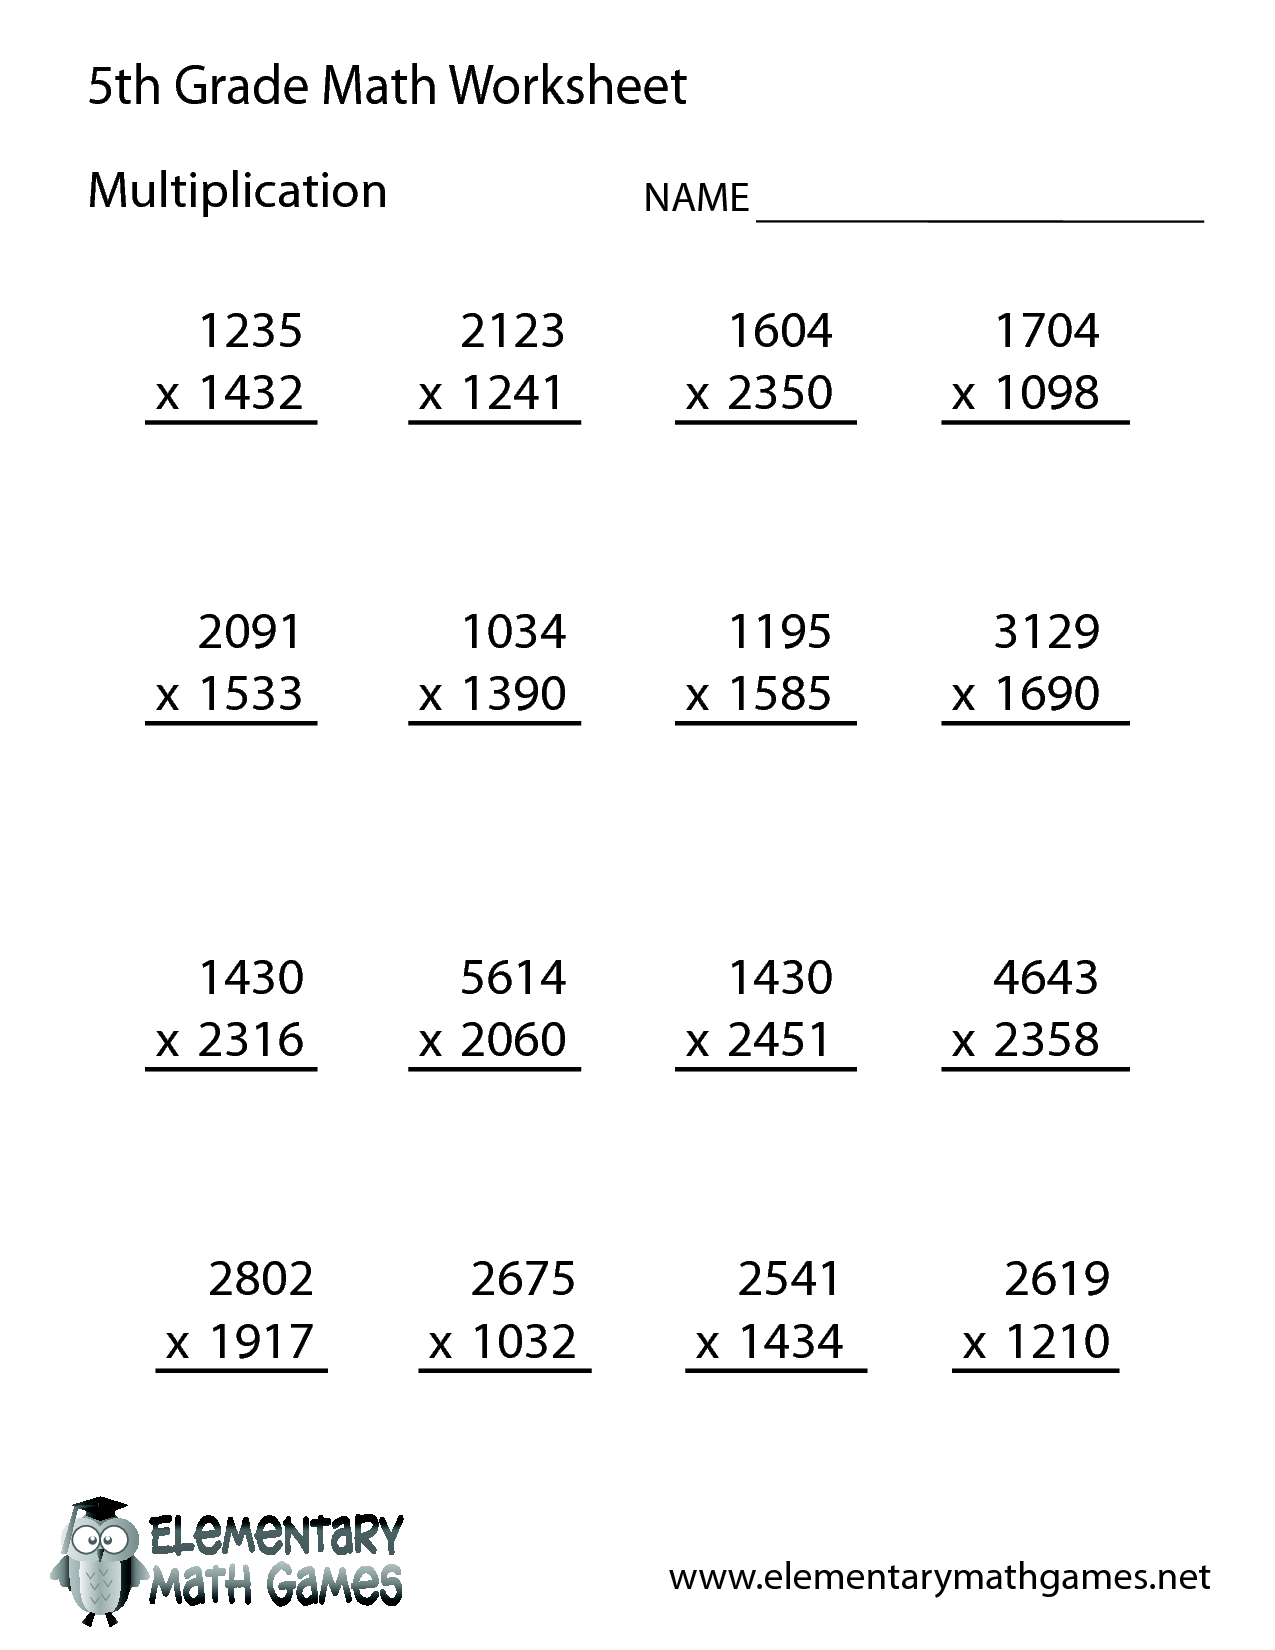 Worksheet Fifth Grade Math Worksheets Free 1000 images about fifth grade worksheets on pinterest and math worksheets